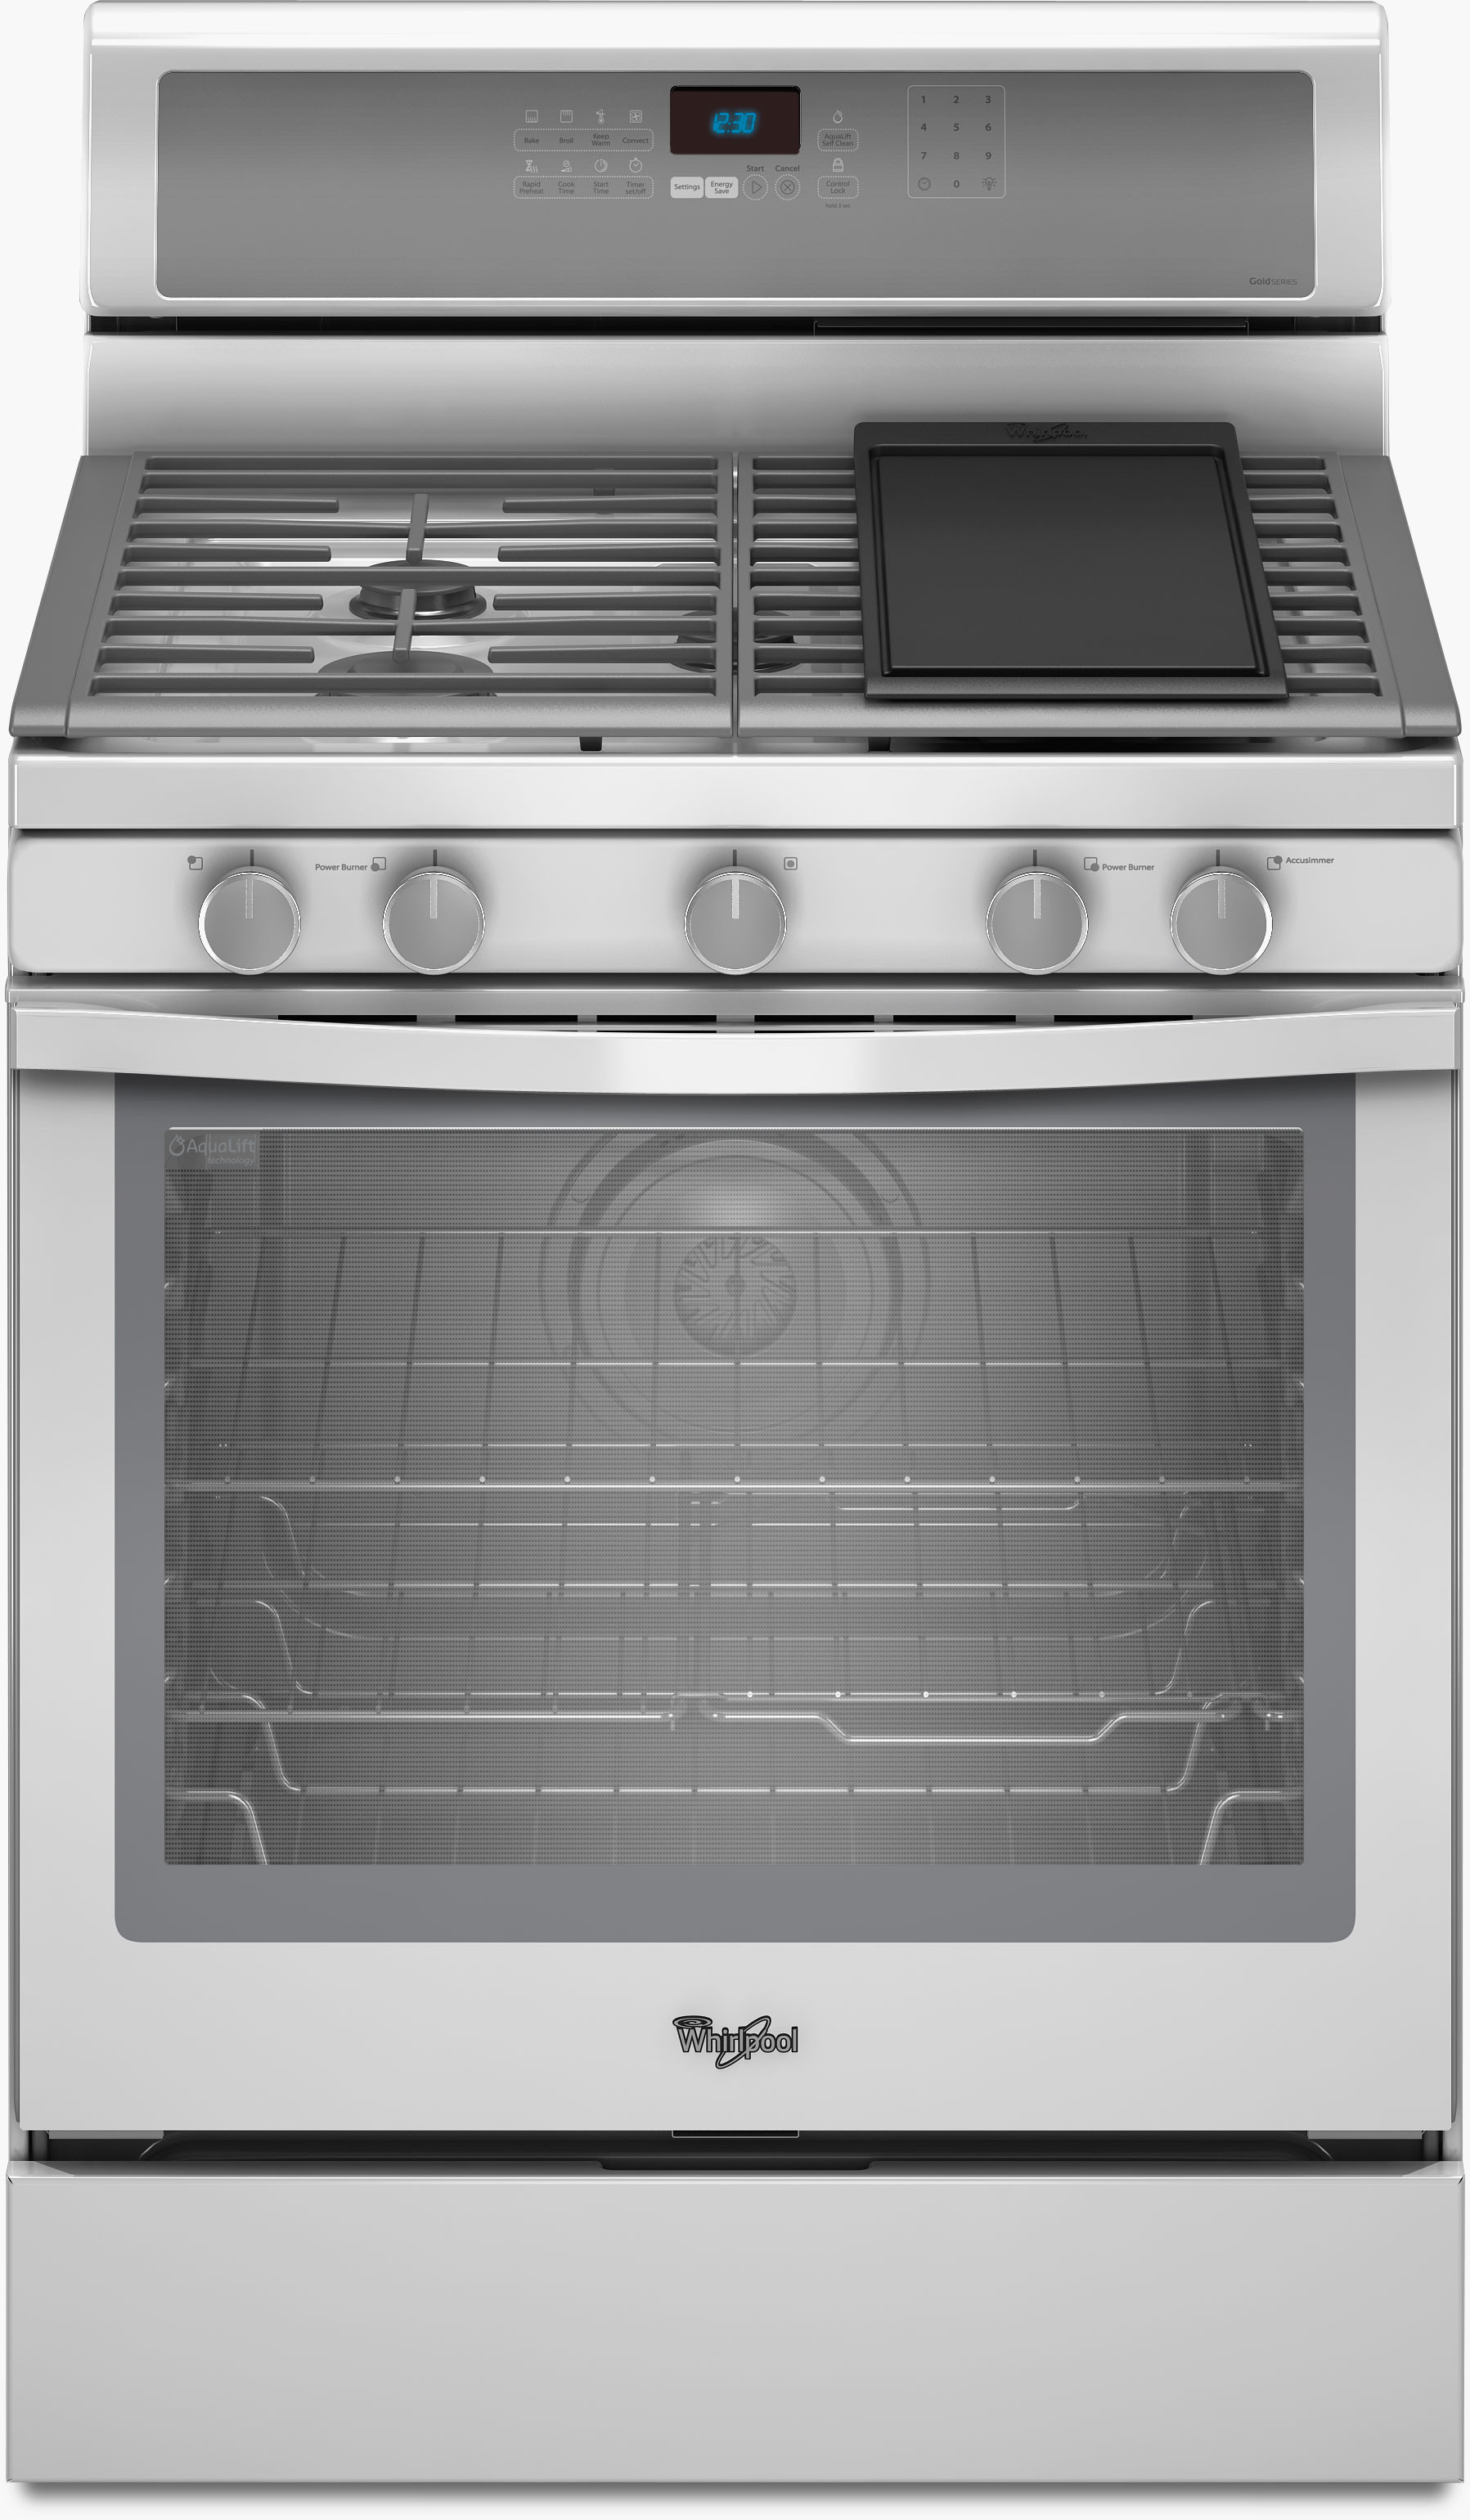 Countertop Warming Drawer Whirlpool Wfg710h0ah 30 Inch Freestanding Gas Range With 4